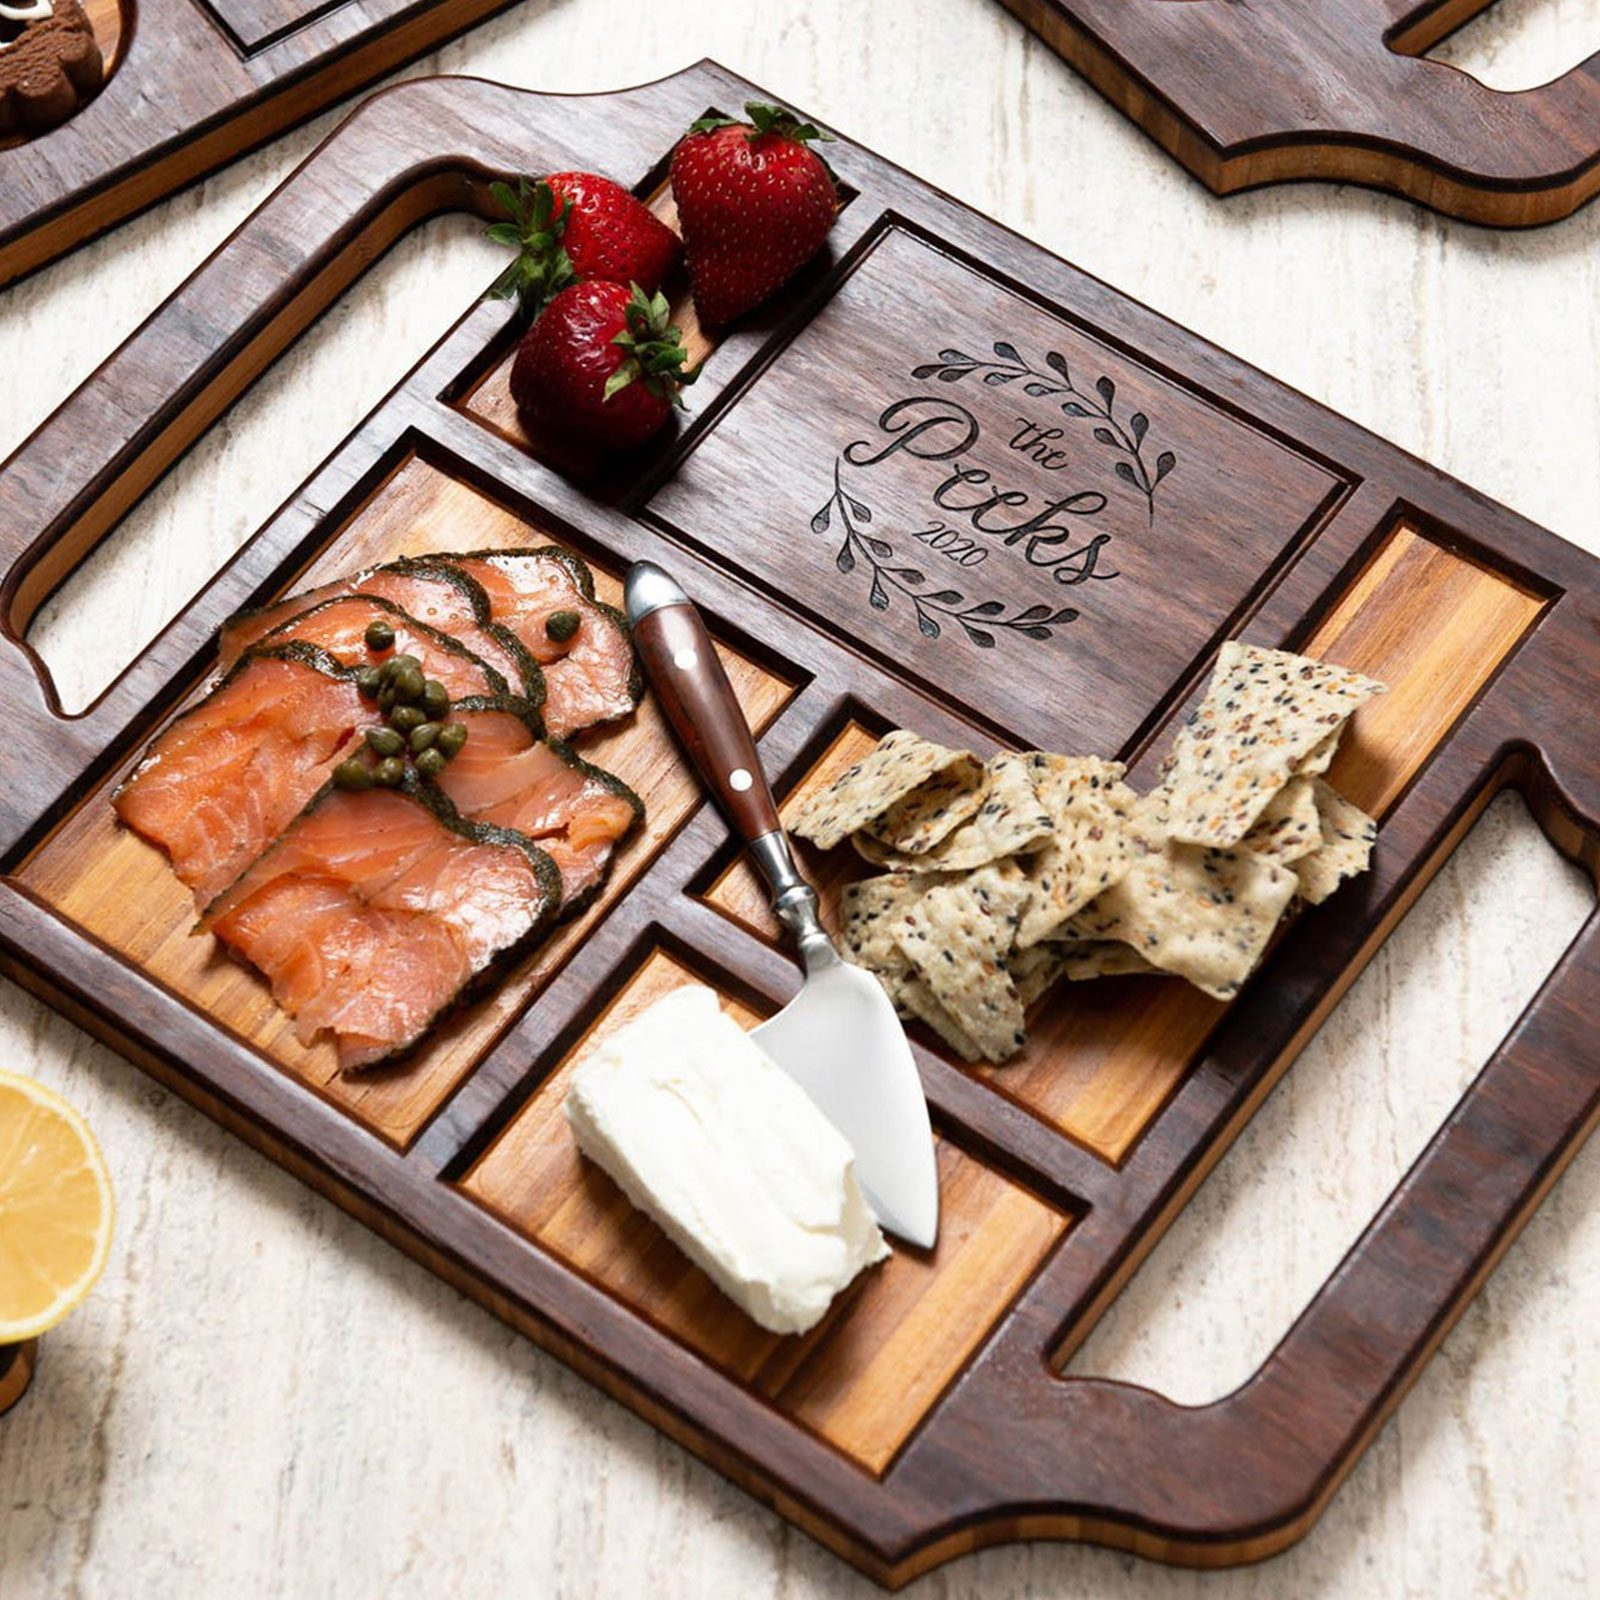 For the gourmand: Left Coast Originals Personalized Charcuterie Board